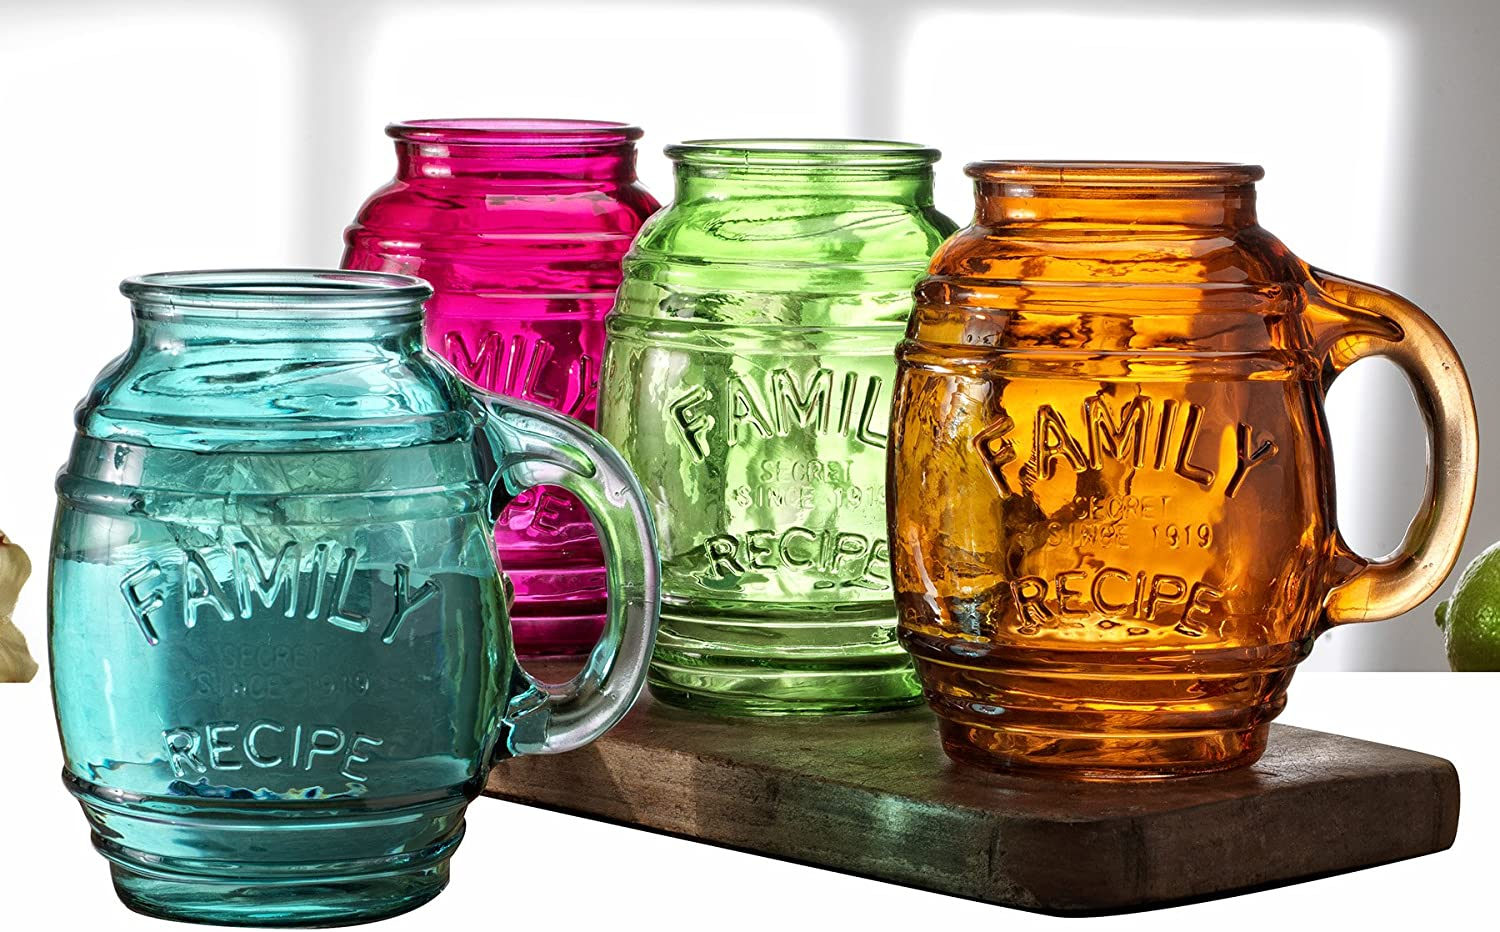 Circleware Family Recipe Glass Barrel Mugs, Set of 4, Assorted Colors, Glassware Drinking Glasses for Bar Liquor, Beer and Beverage Drinks, 26 oz